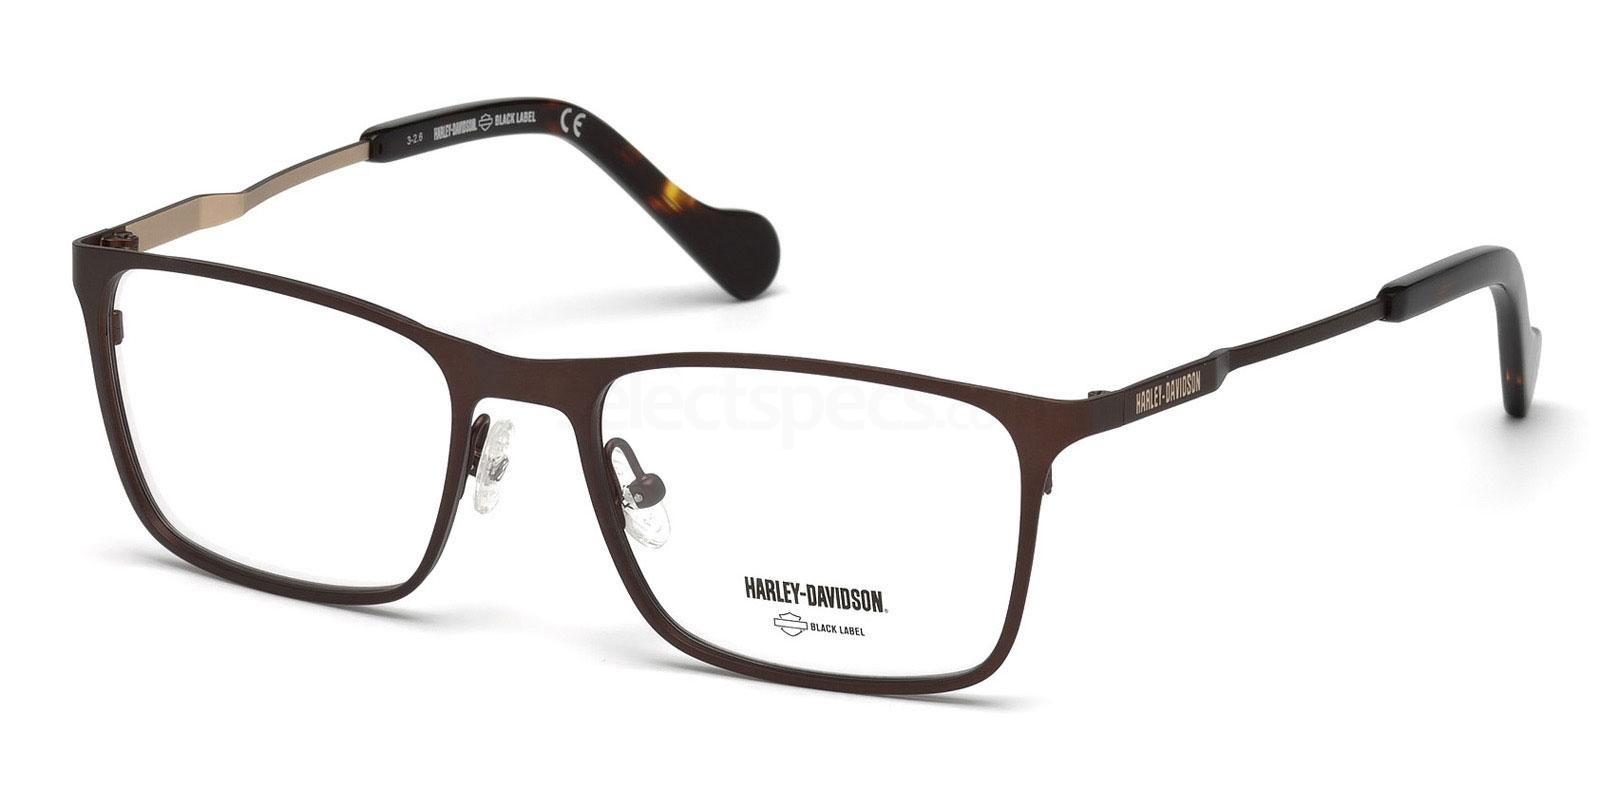 050 HD1042 Glasses, Harley Davidson